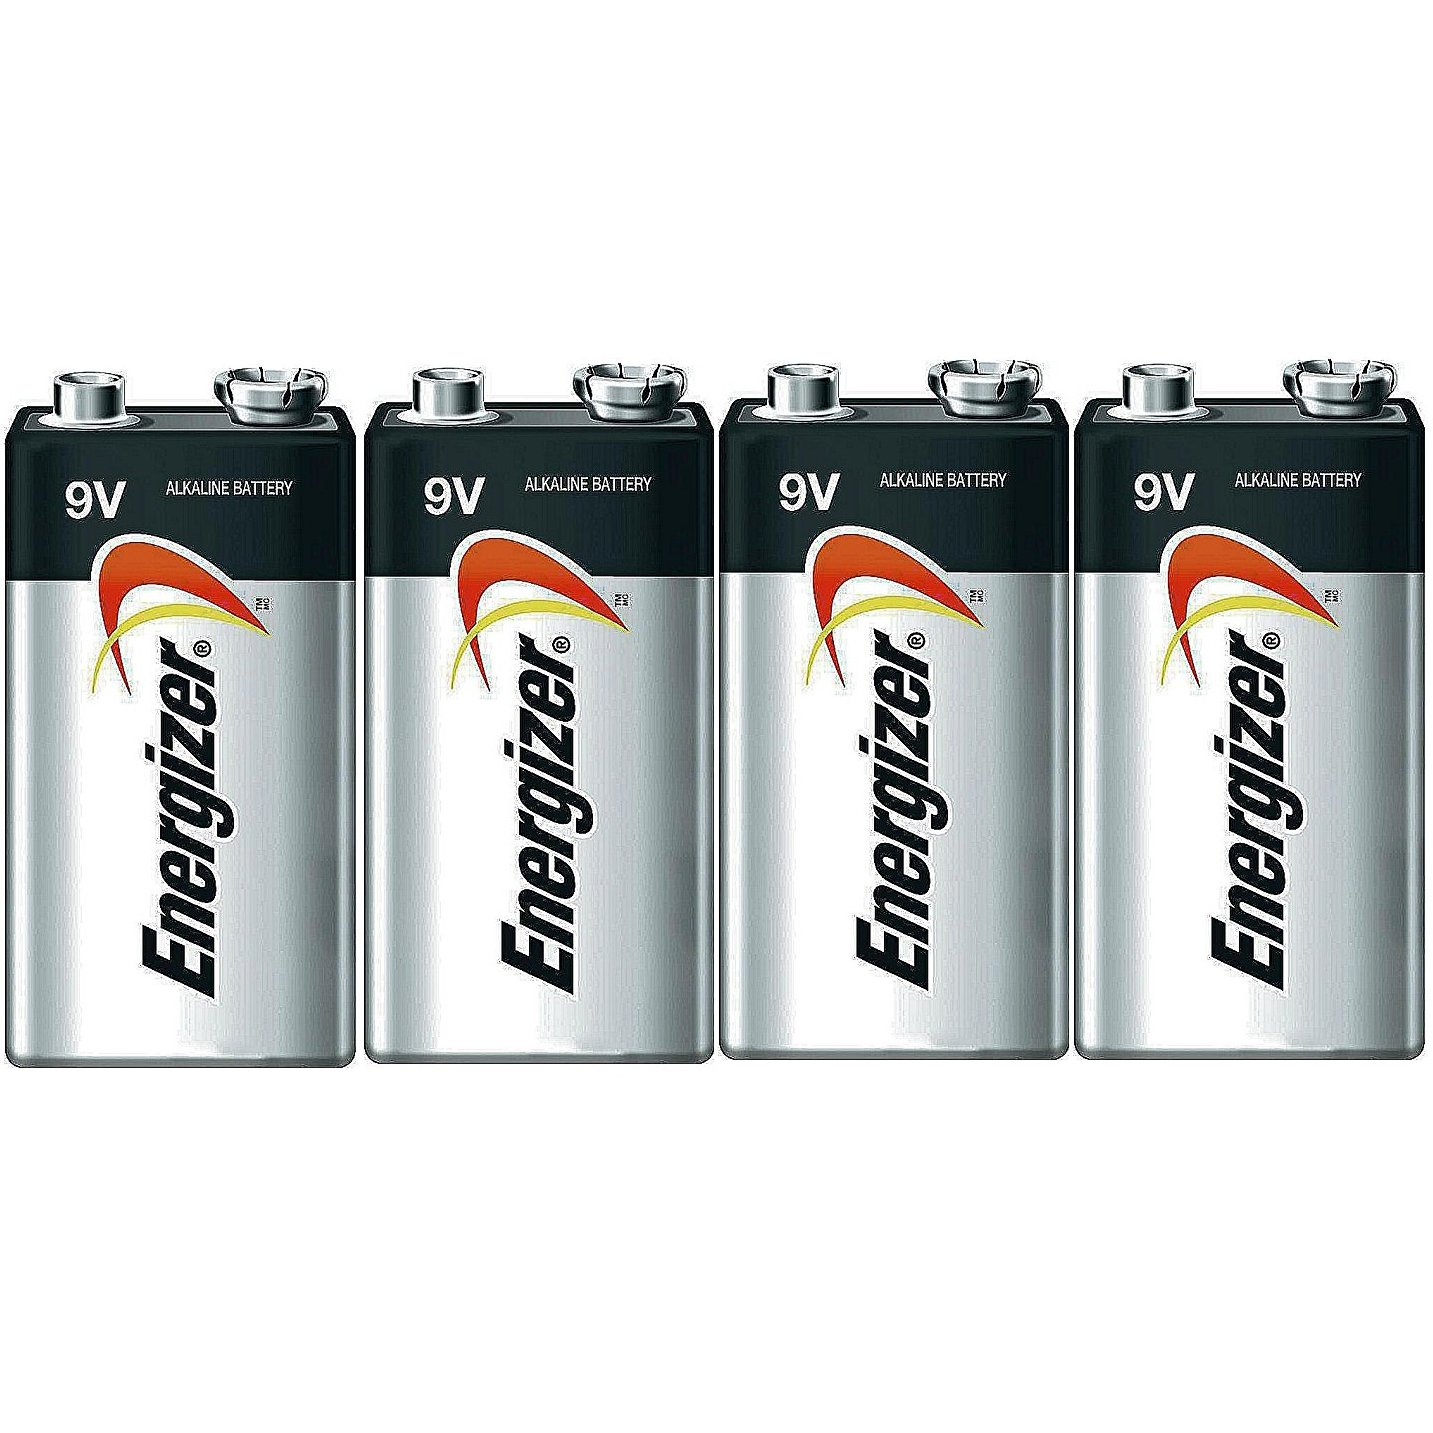 Energizer E522 Max 9V Alkaline battery Exp. 12/22 or later - 4 Count